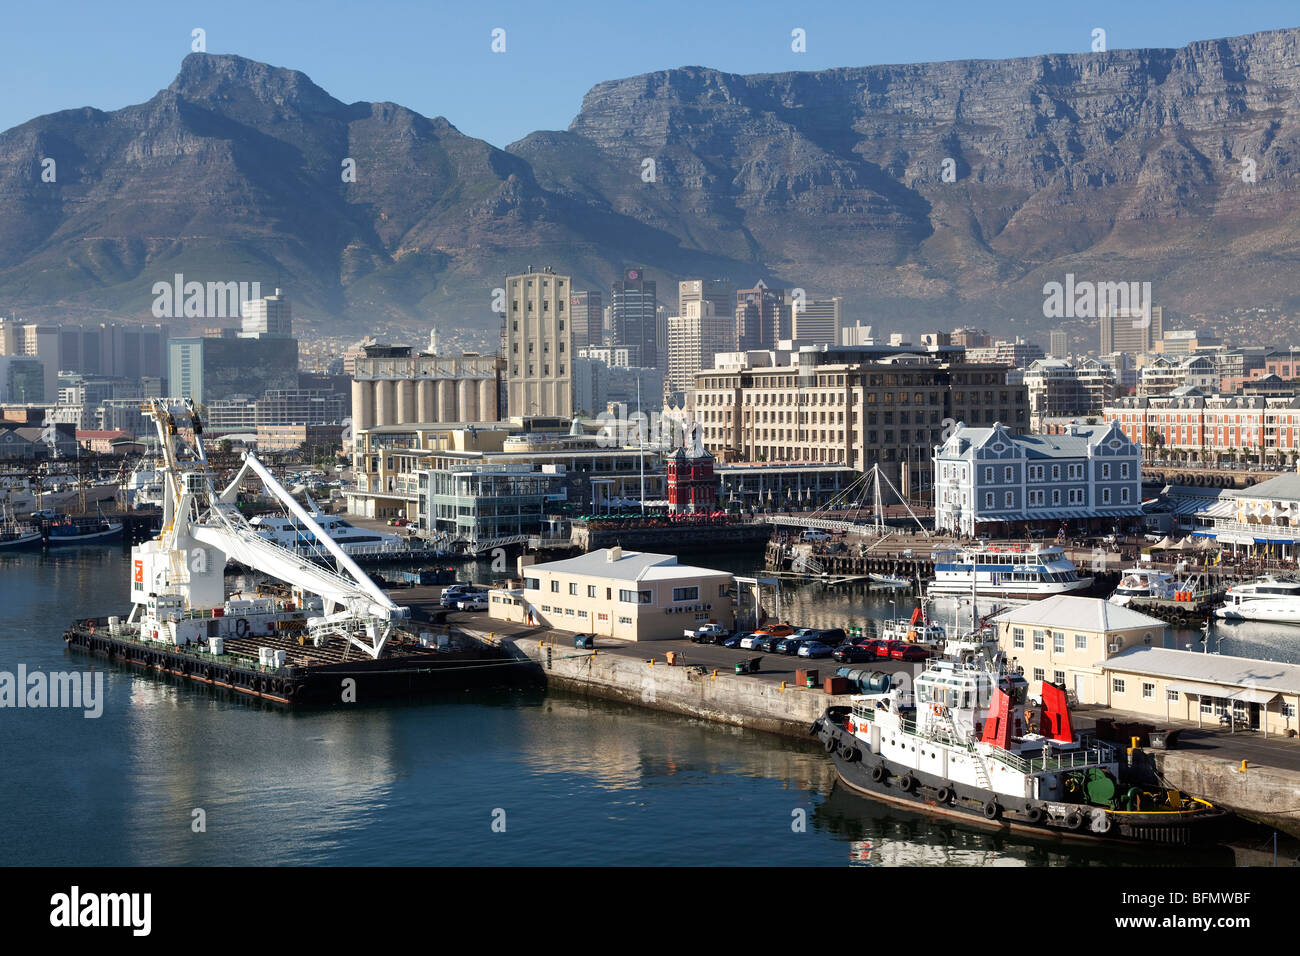 South Africa, Western Cape, Cape Town. The view looking across the Waterfront towards the Cape Grace Hotel and the - Stock Image